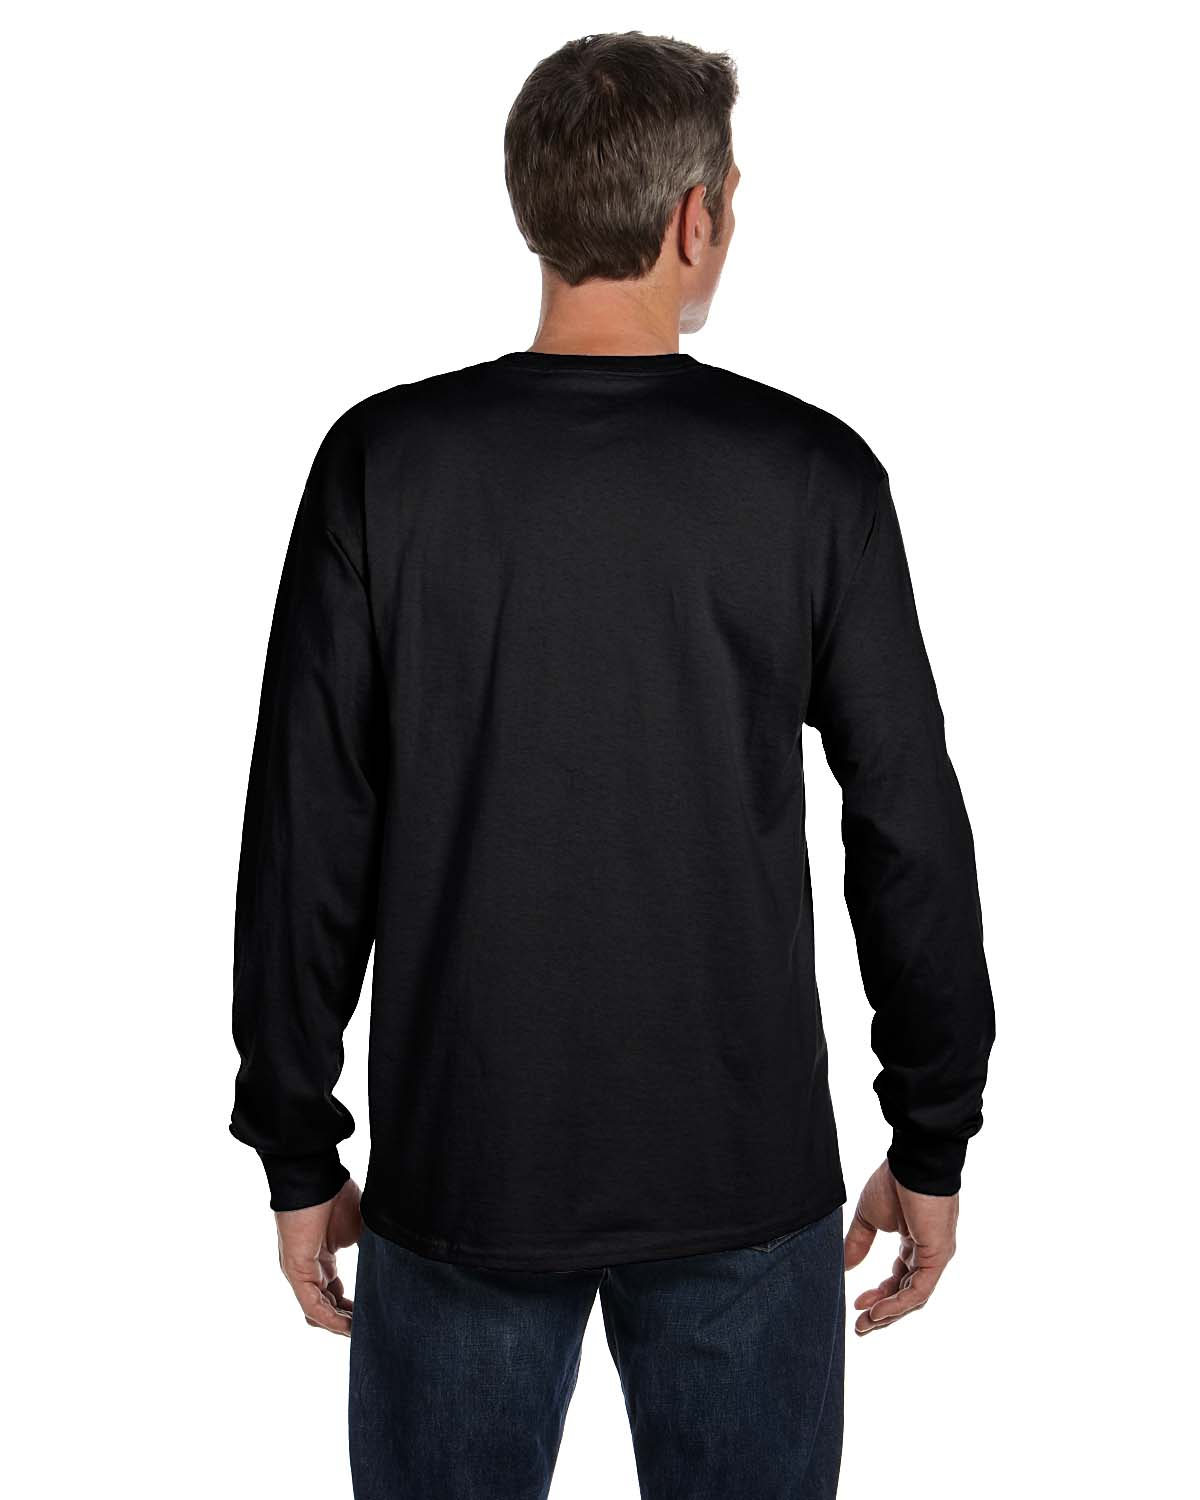 Hanes Men's Tagless Cotton Long Sleeve Pocket Tshirt - Walmart.com